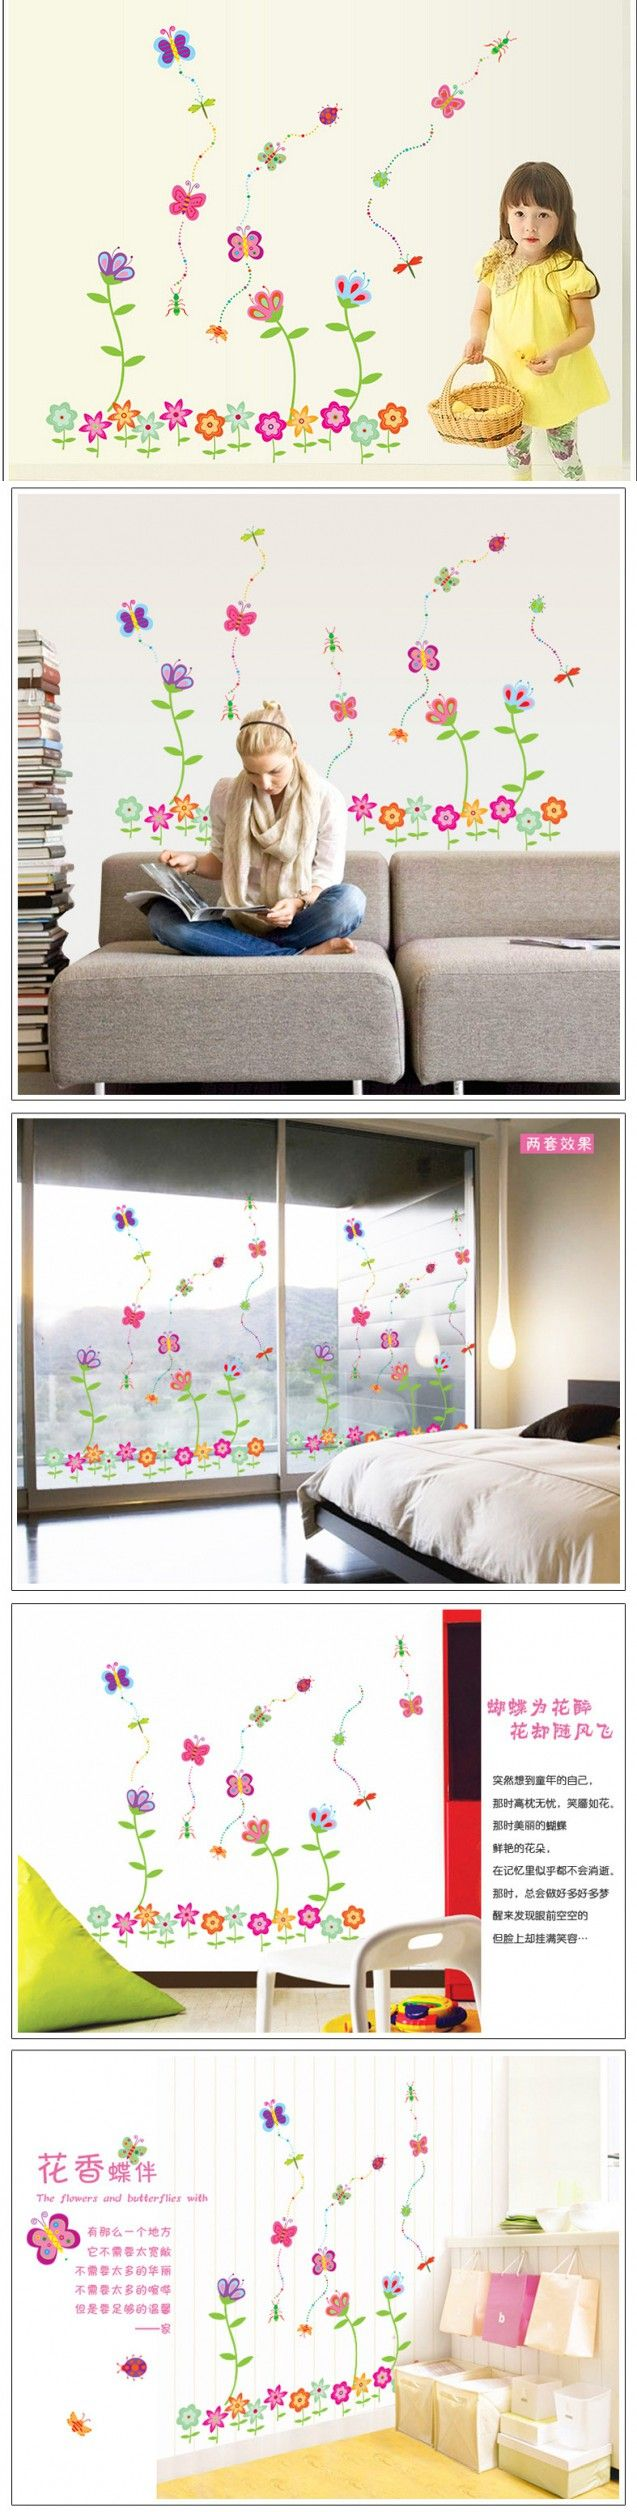 Bathroom wall decor stickers - Wall Stickers Home Decor Warmly Decorated Bedroom Baseboard Walled Flower Butterfly Bed Bathroom Wall Stickeray7042 Wall Decor